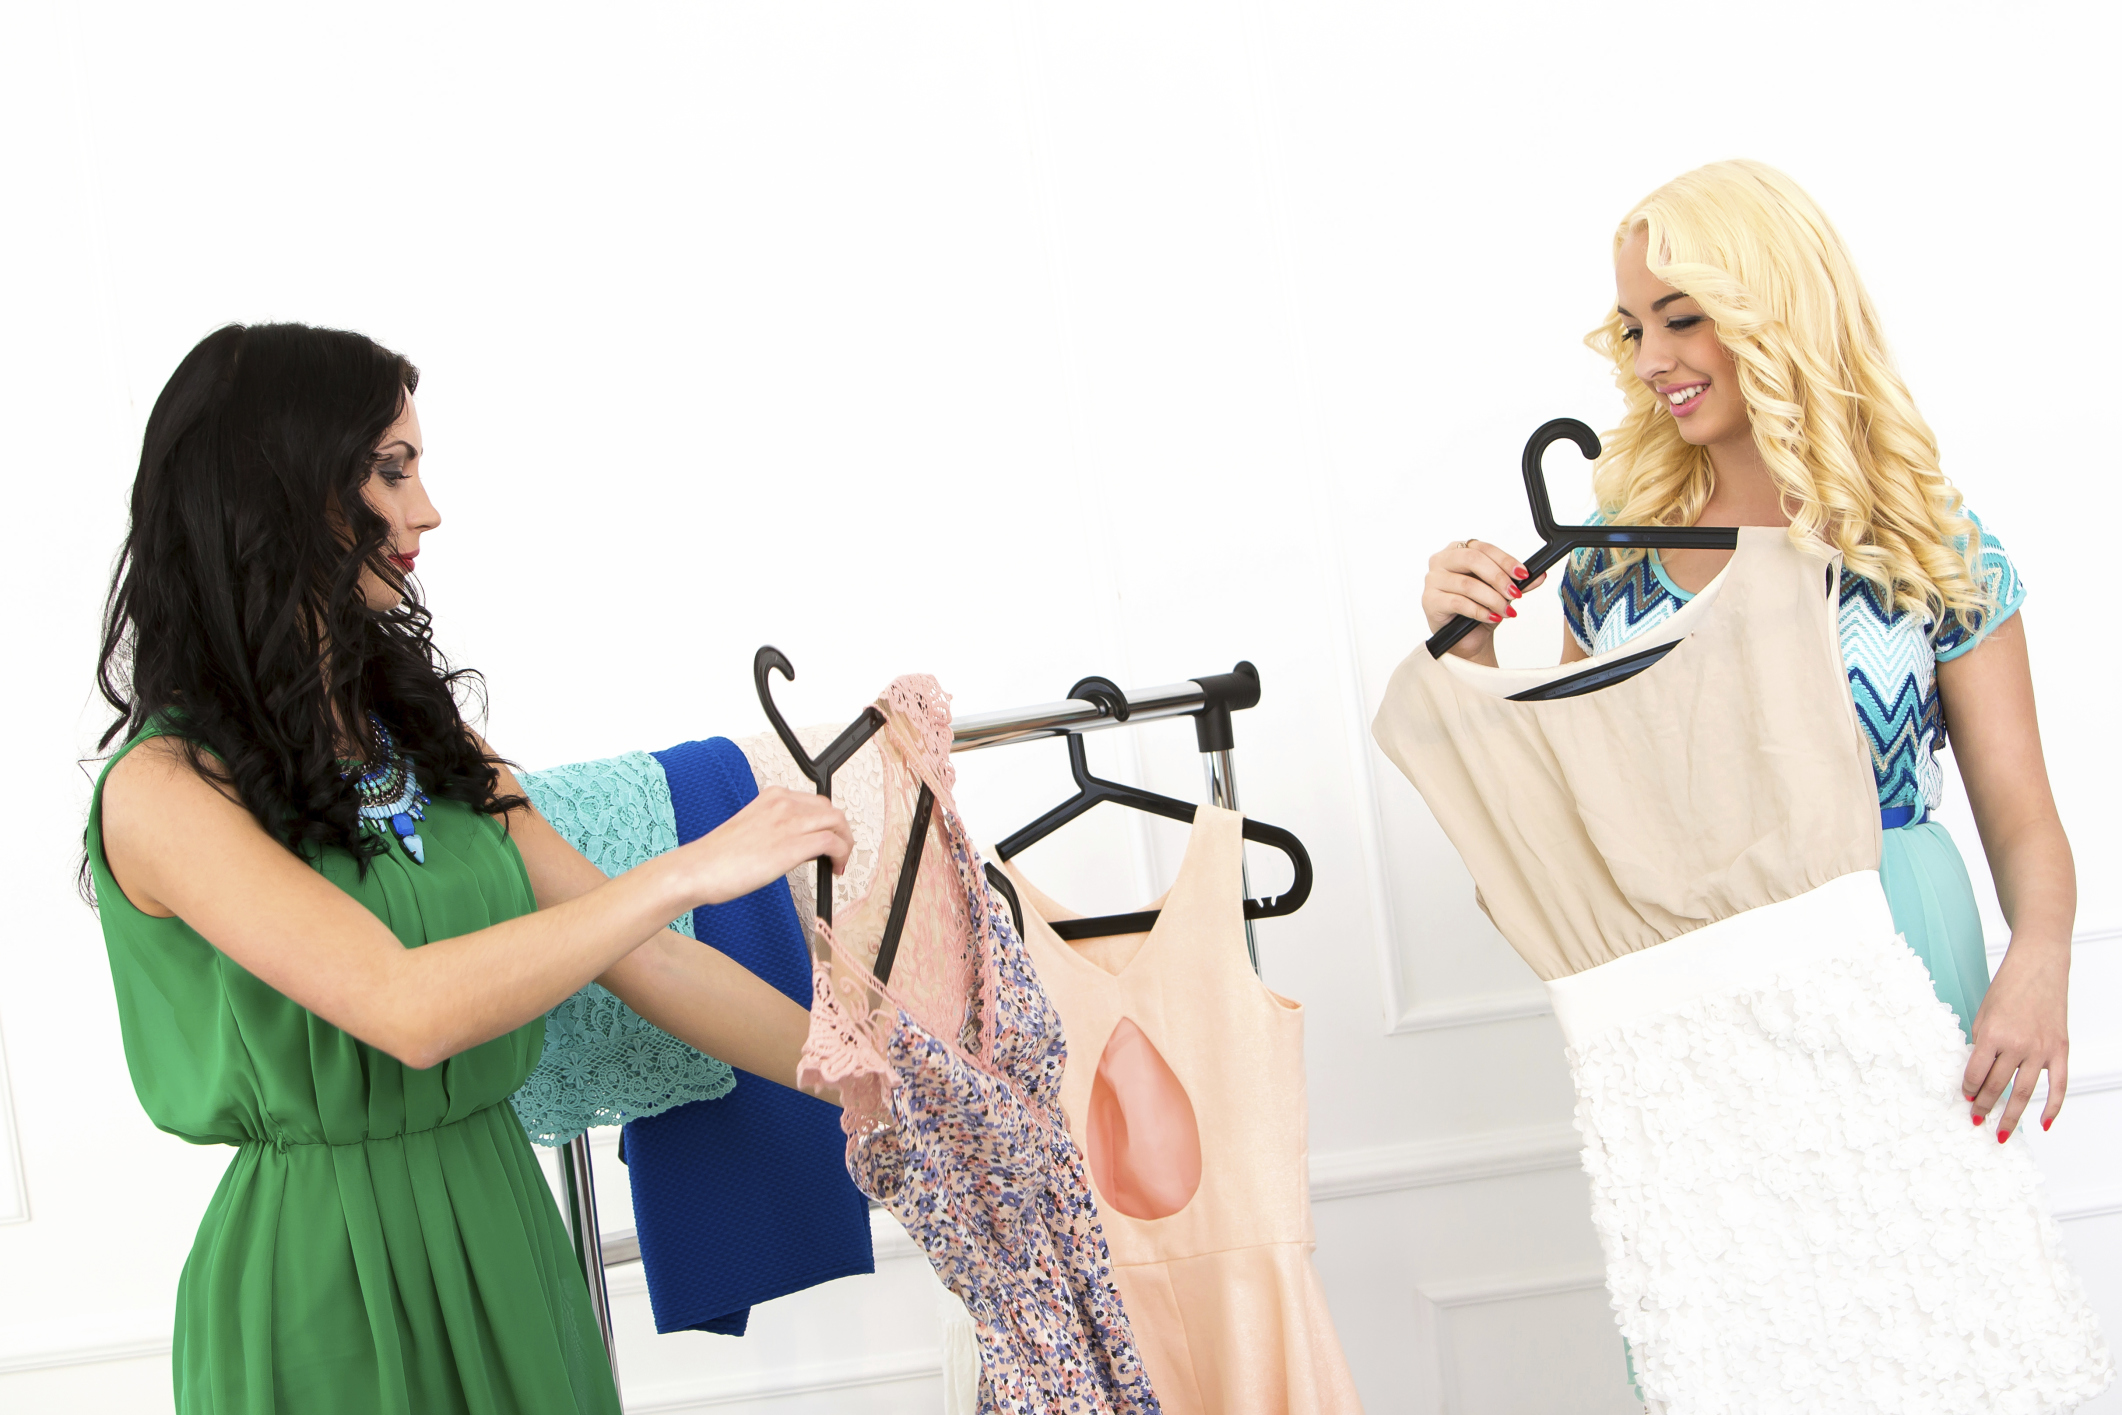 Miami Personal Stylist and Personal Shopper Training